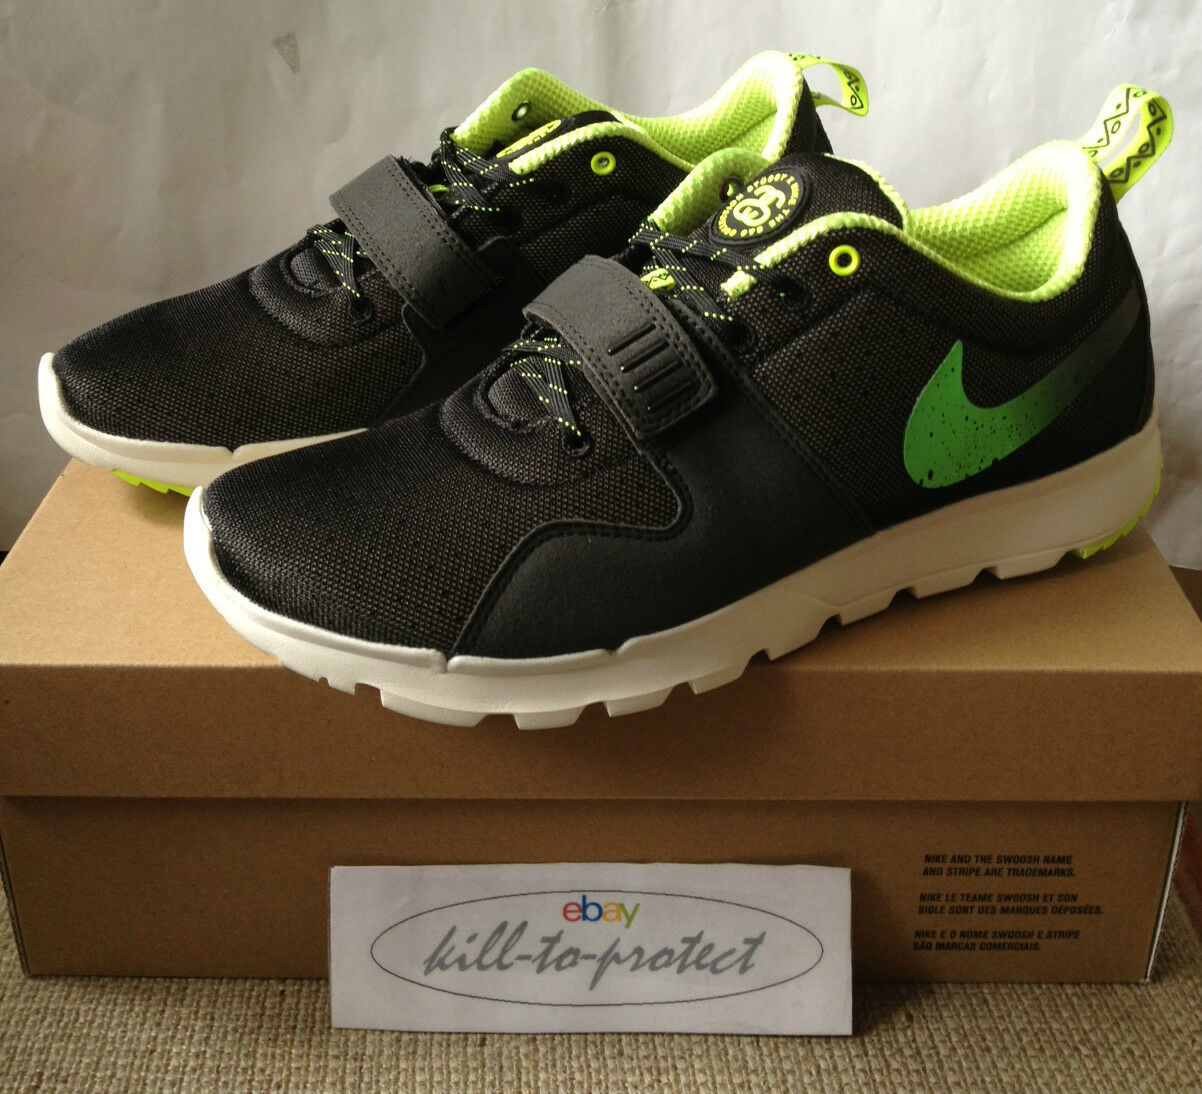 STUSSY x NIKE ACG TRAINERENDOR Green Sz US UK9 10 11 12 13 SB 3M 634928-070 2013